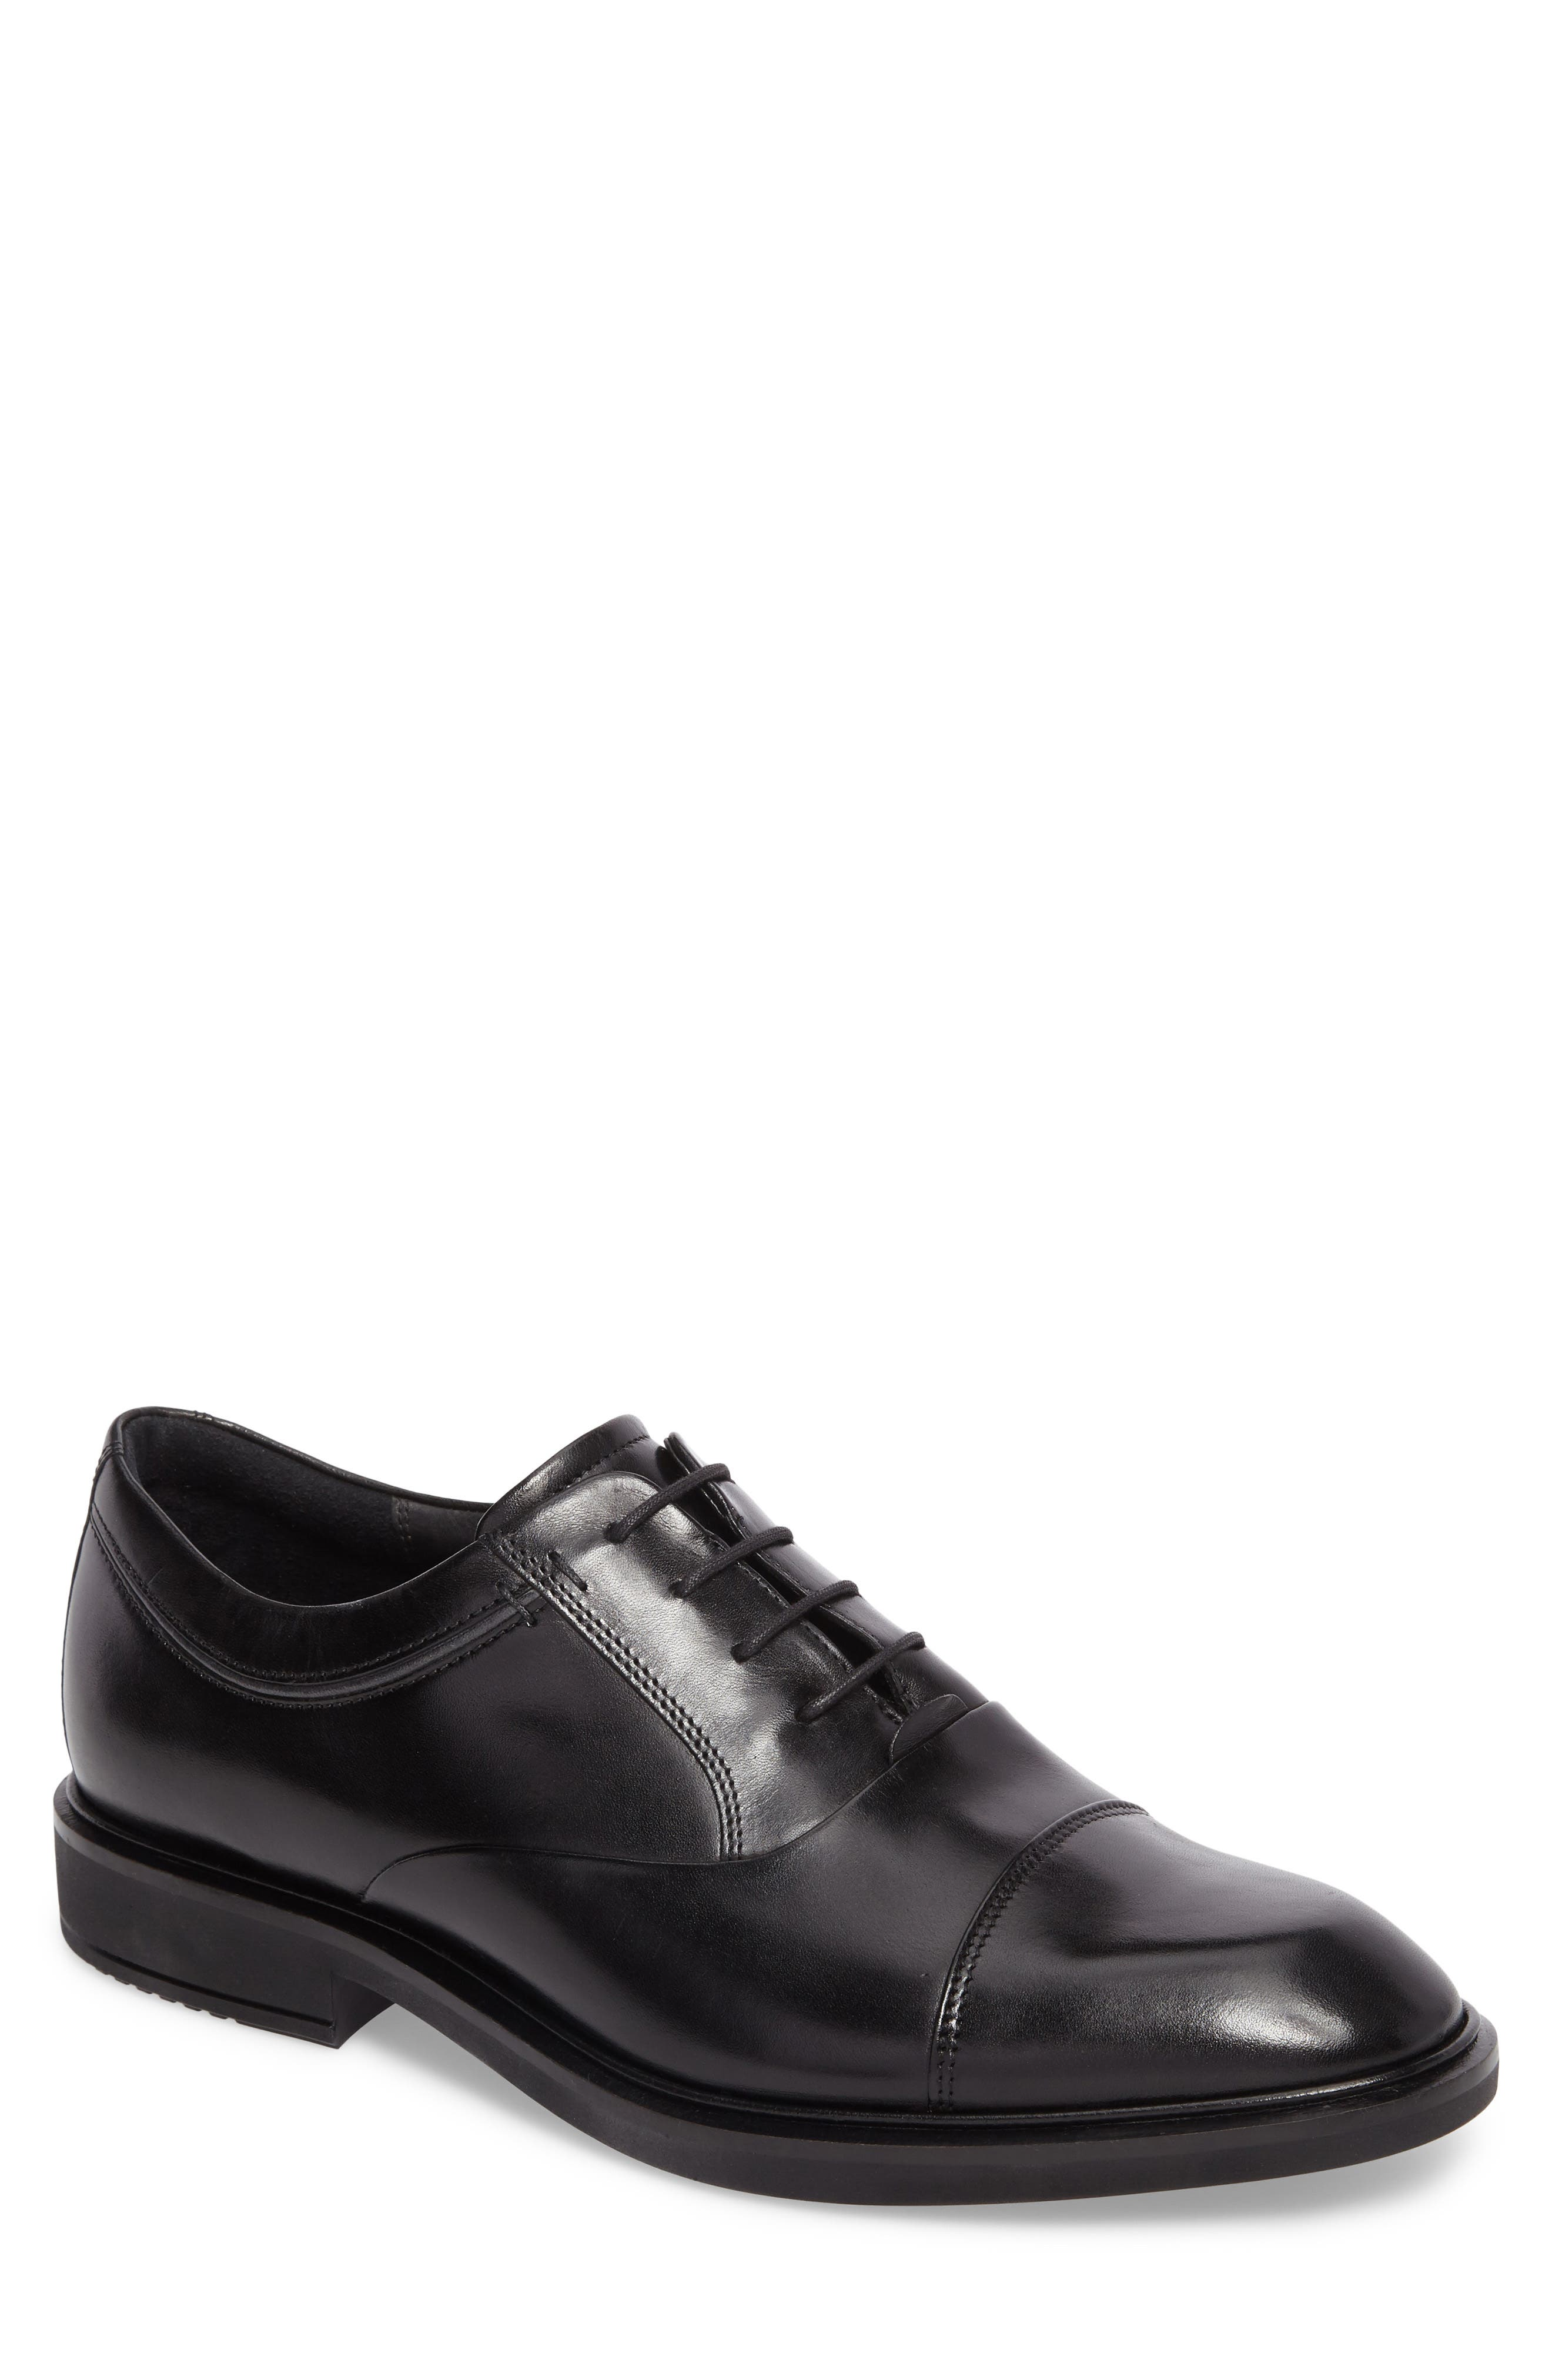 Vitrus II Cap Toe Oxford,                             Main thumbnail 1, color,                             BLACK LEATHER